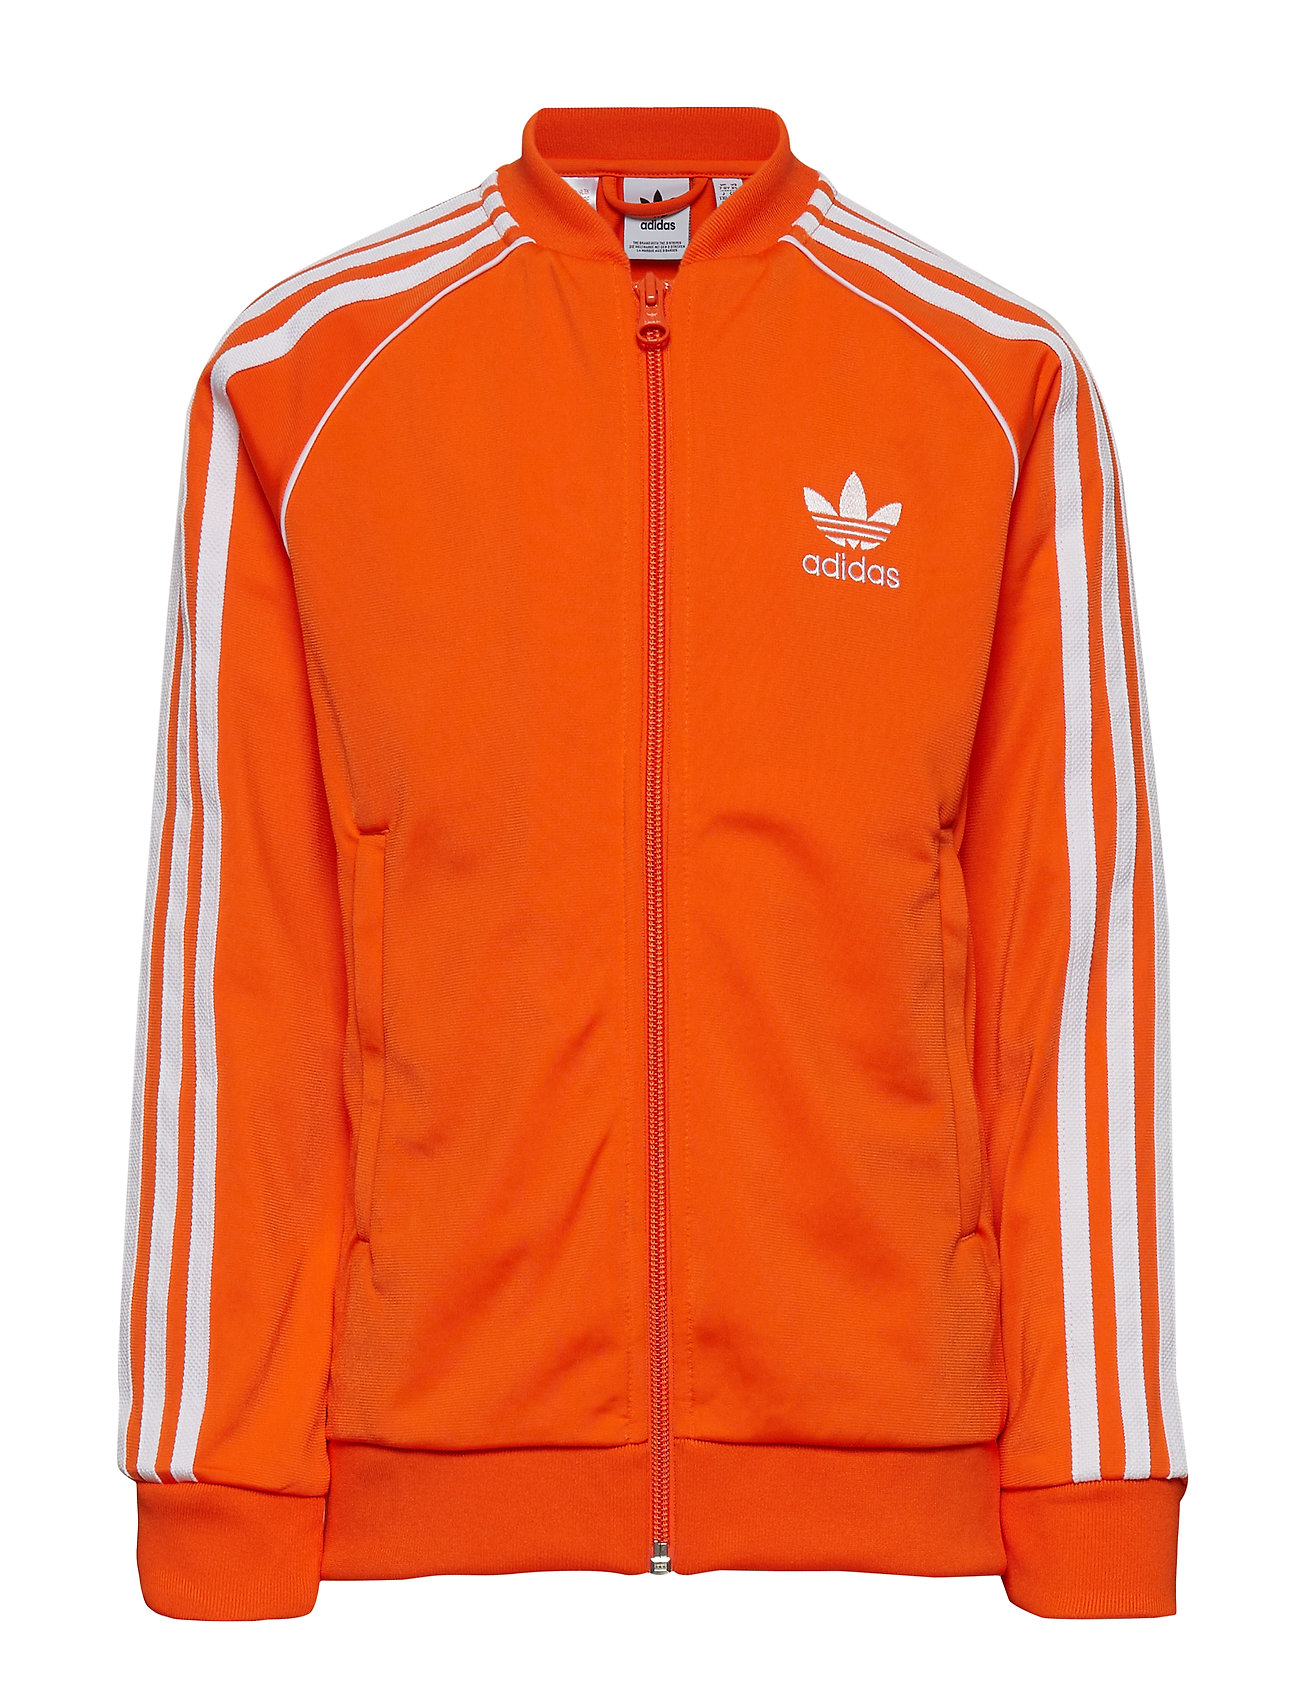 adidas Originals SUPERSTAR TOP - ORANGE/WHITE